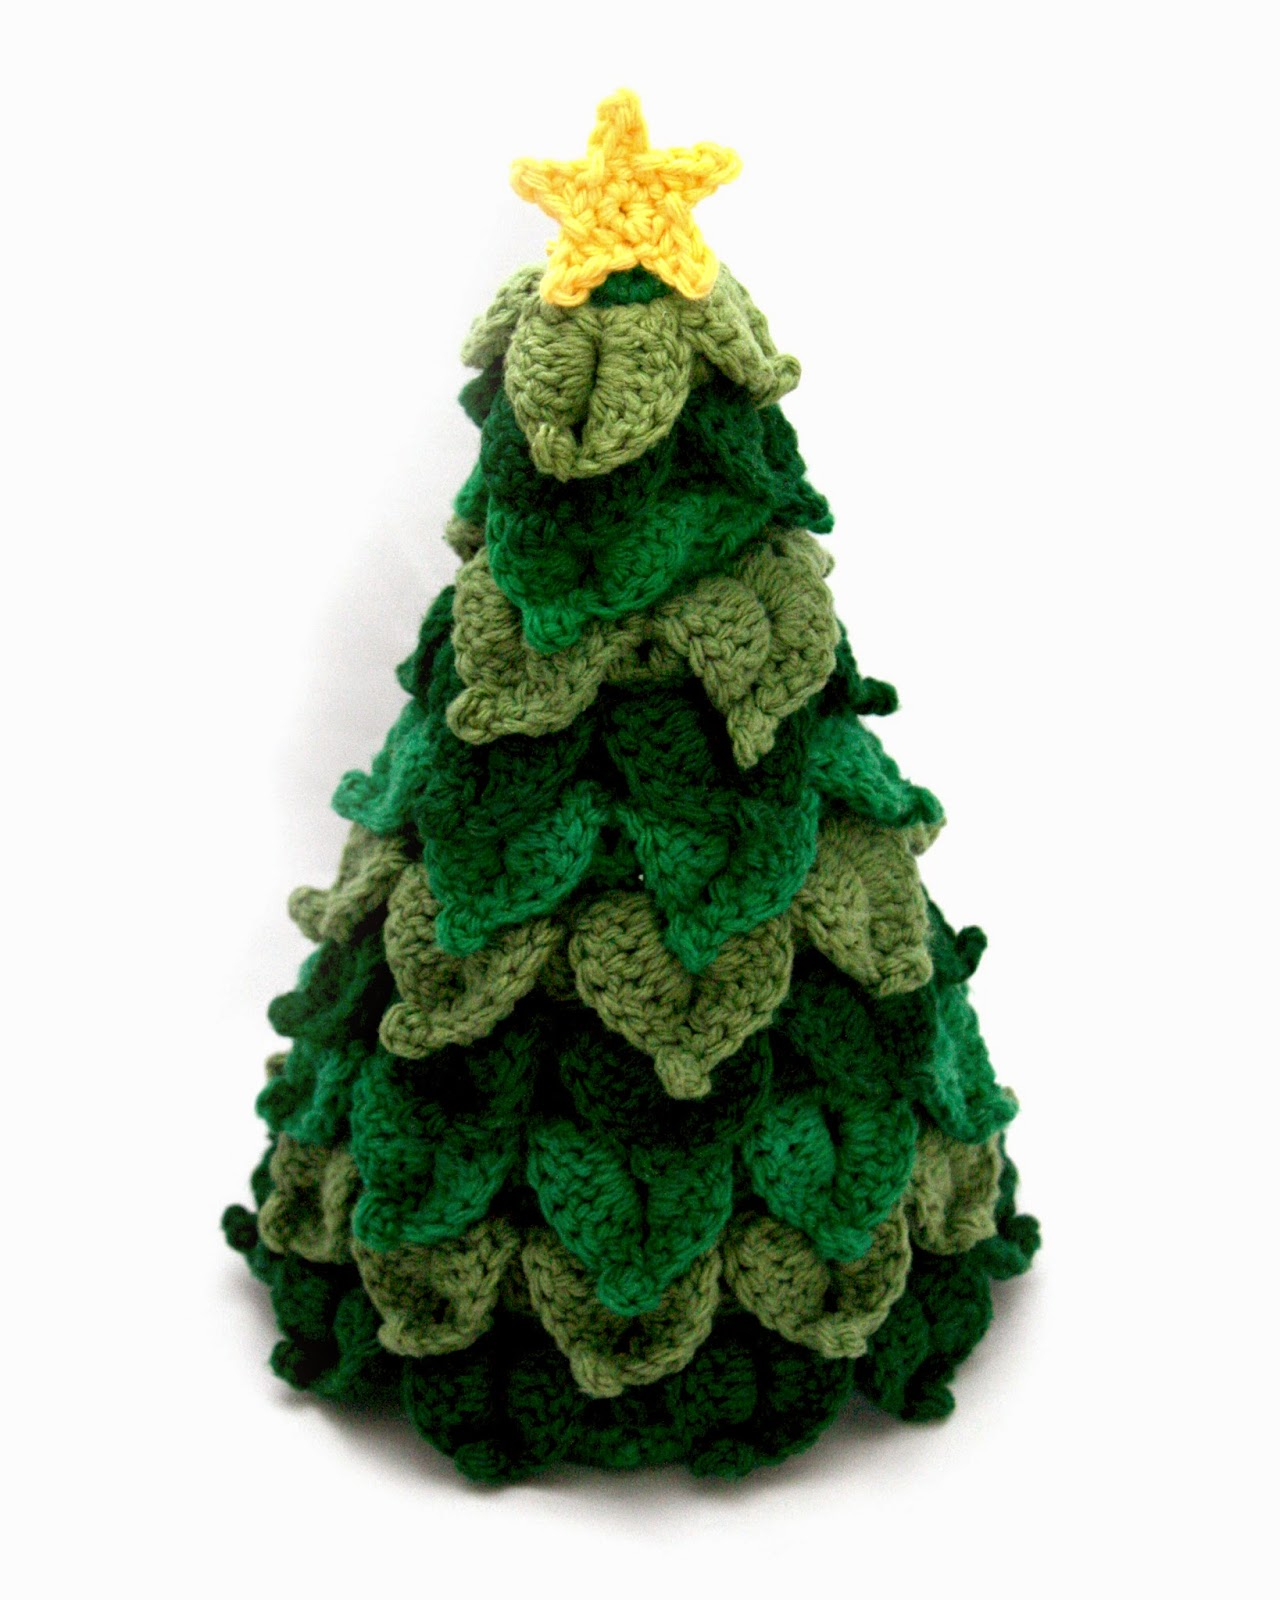 Little Abbee: O Crochet Christmas Tree! Crochet TUTORIAL